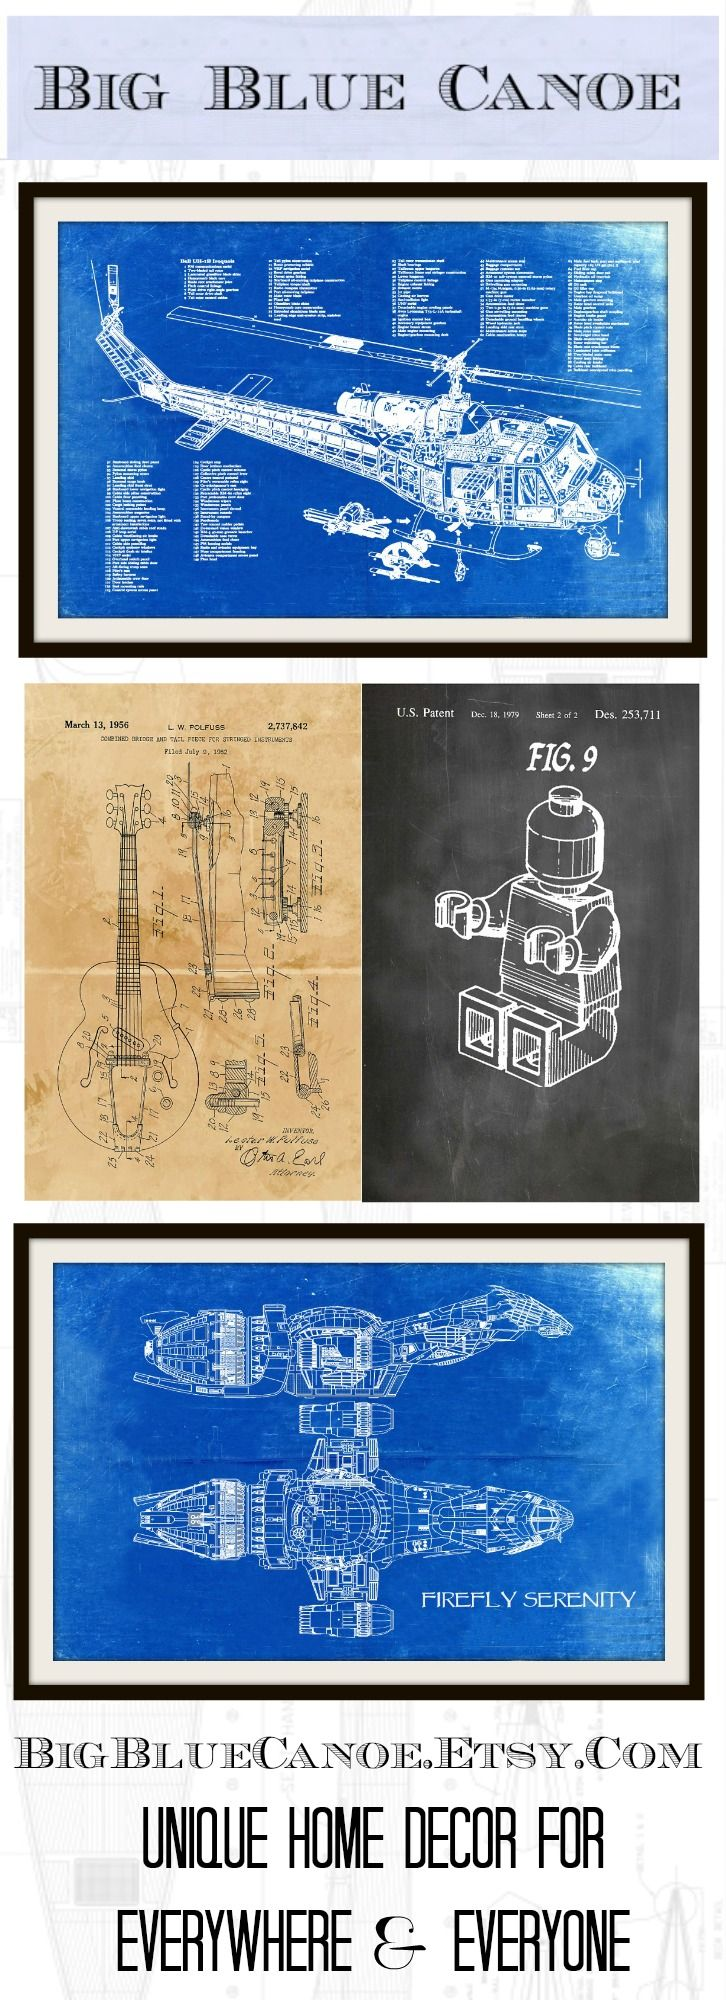 103 best big blue canoe etsy store images on pinterest blue canoe blueprint art patent posters vintage ads and more malvernweather Image collections